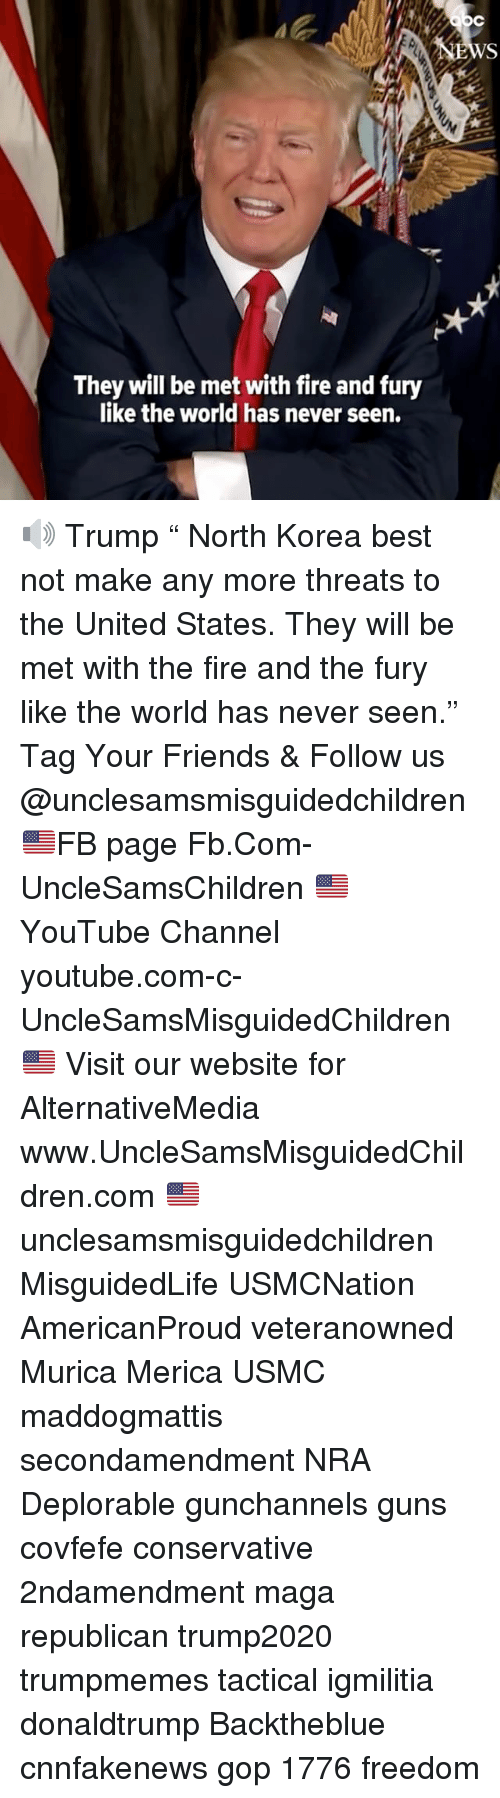 """Covfefe: They will be met with fire and fury  like the world has never seen. 🔊 Trump """" North Korea best not make any more threats to the United States. They will be met with the fire and the fury like the world has never seen."""" Tag Your Friends & Follow us @unclesamsmisguidedchildren 🇺🇸FB page Fb.Com-UncleSamsChildren 🇺🇸YouTube Channel youtube.com-c-UncleSamsMisguidedChildren 🇺🇸 Visit our website for AlternativeMedia www.UncleSamsMisguidedChildren.com 🇺🇸 unclesamsmisguidedchildren MisguidedLife USMCNation AmericanProud veteranowned Murica Merica USMC maddogmattis secondamendment NRA Deplorable gunchannels guns covfefe conservative 2ndamendment maga republican trump2020 trumpmemes tactical igmilitia donaldtrump Backtheblue cnnfakenews gop 1776 freedom"""